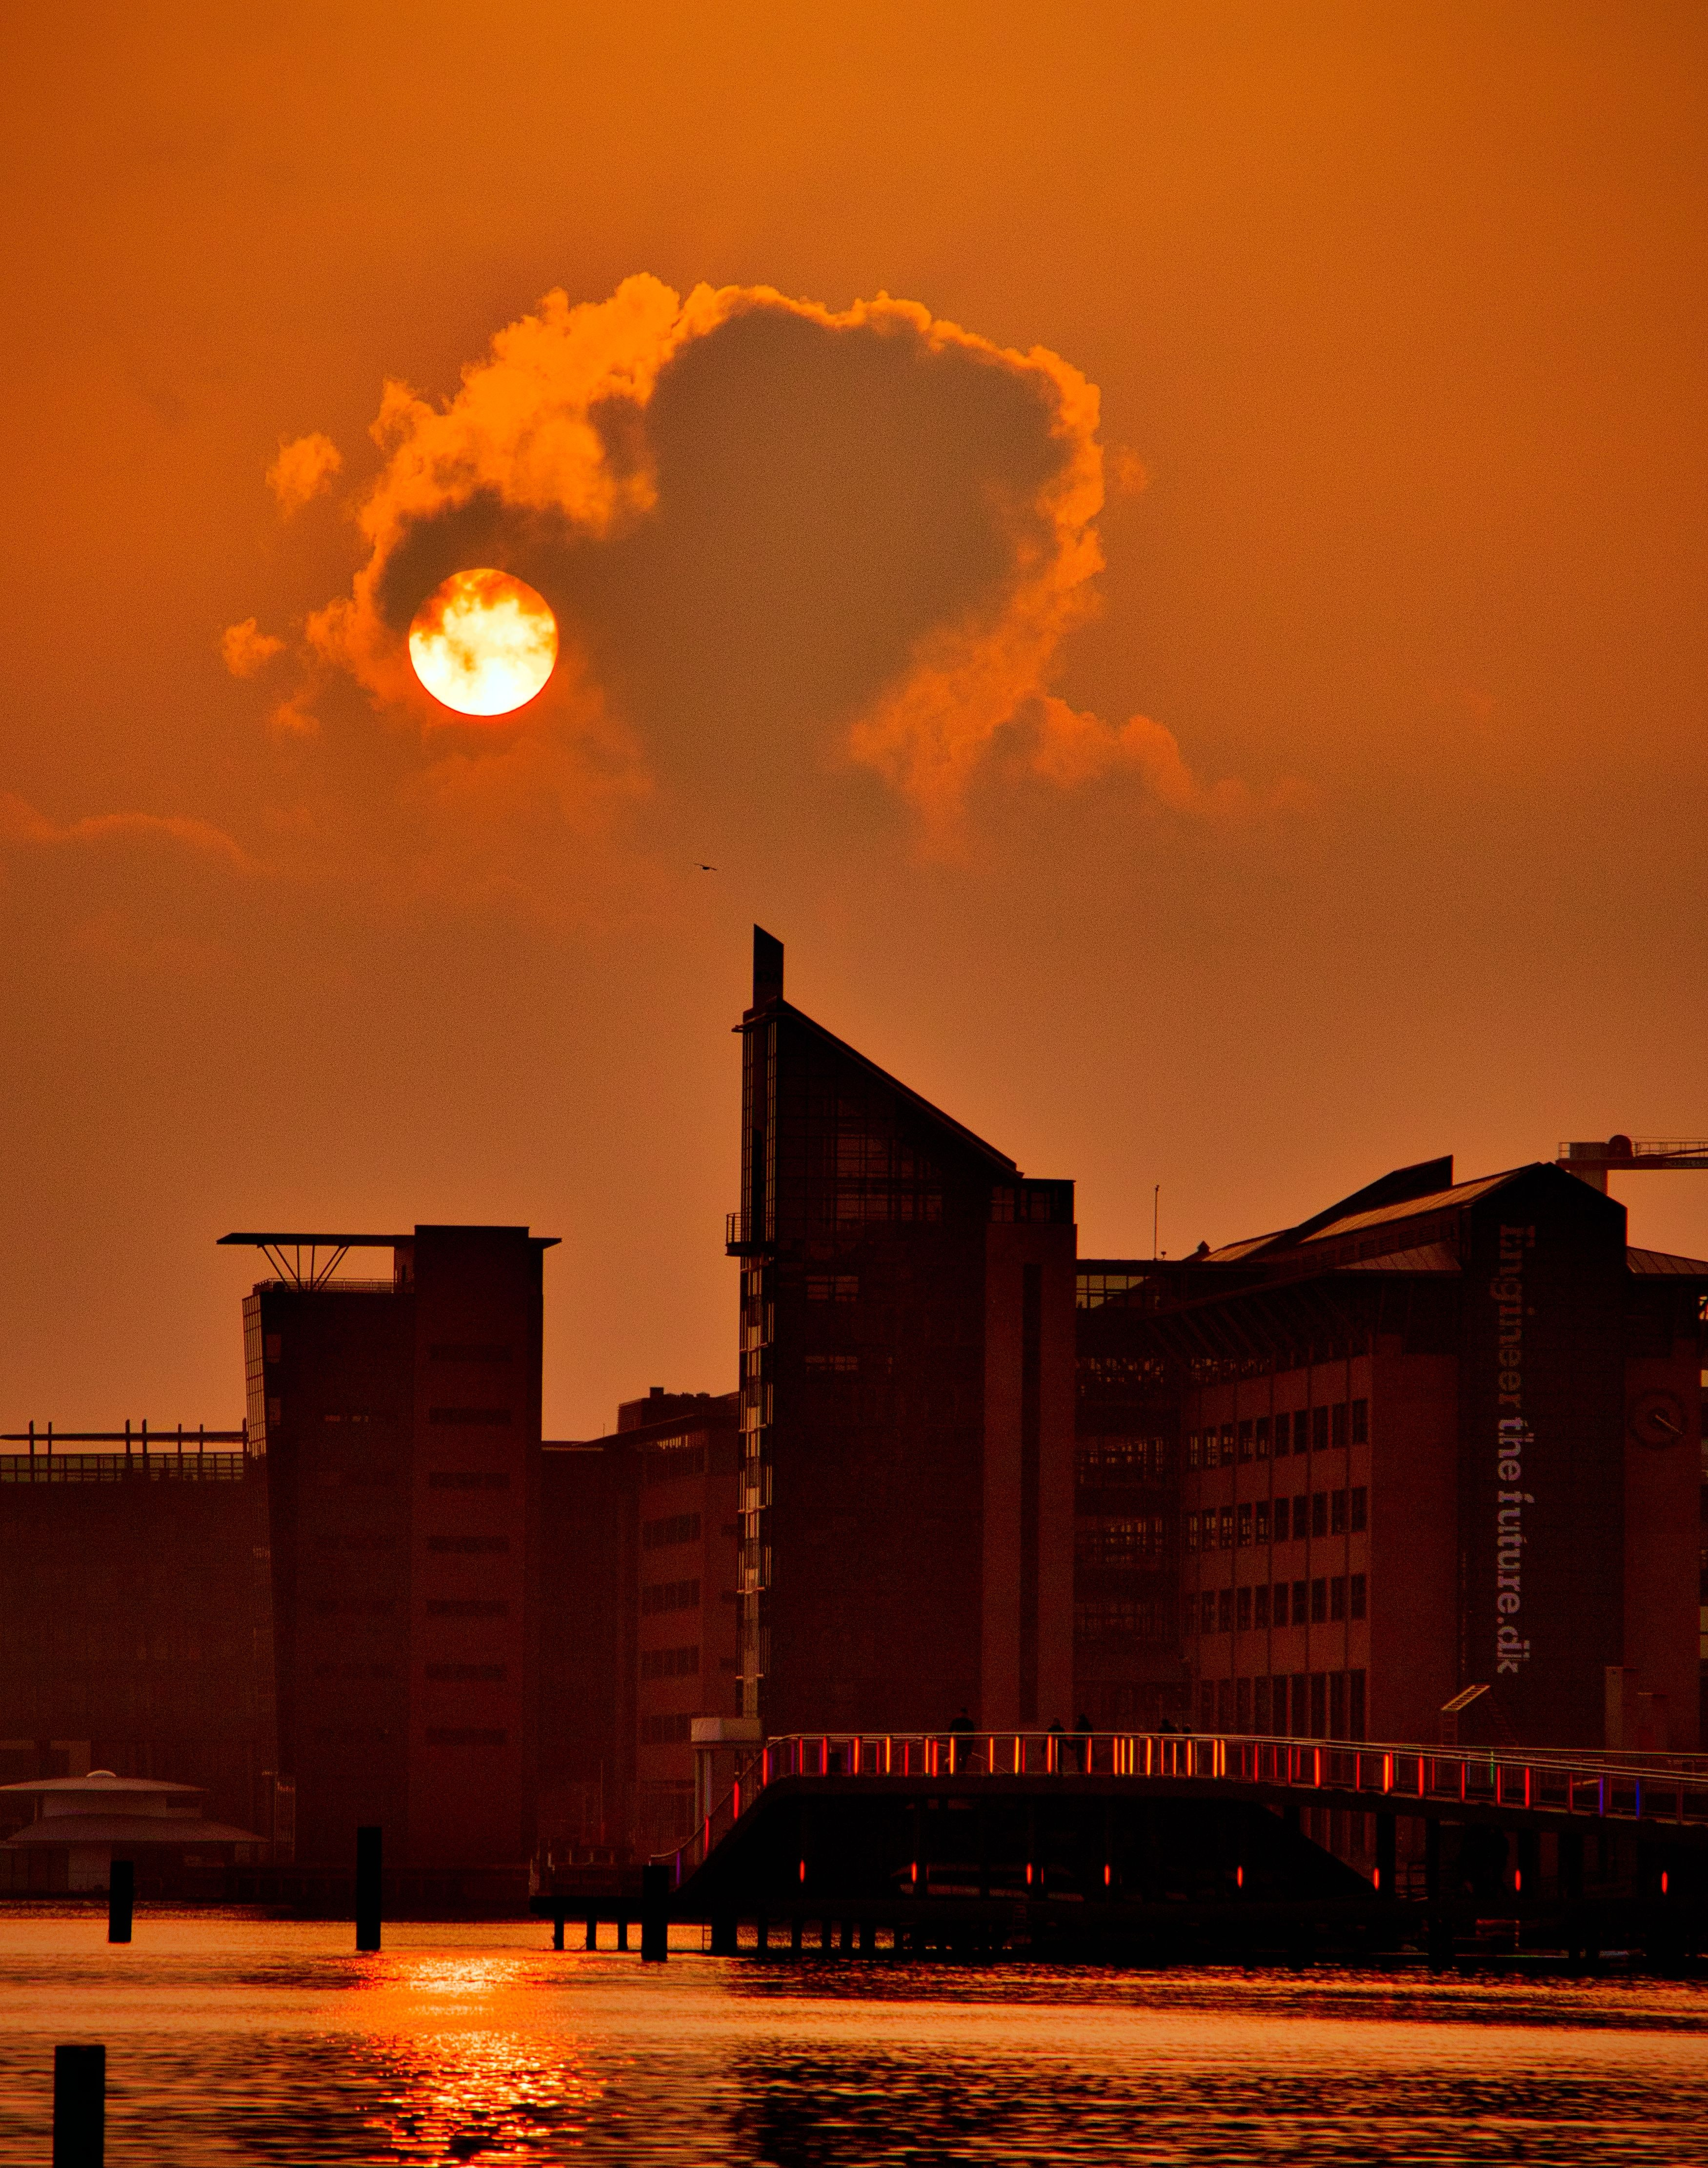 scenery of tall buildings during sunset